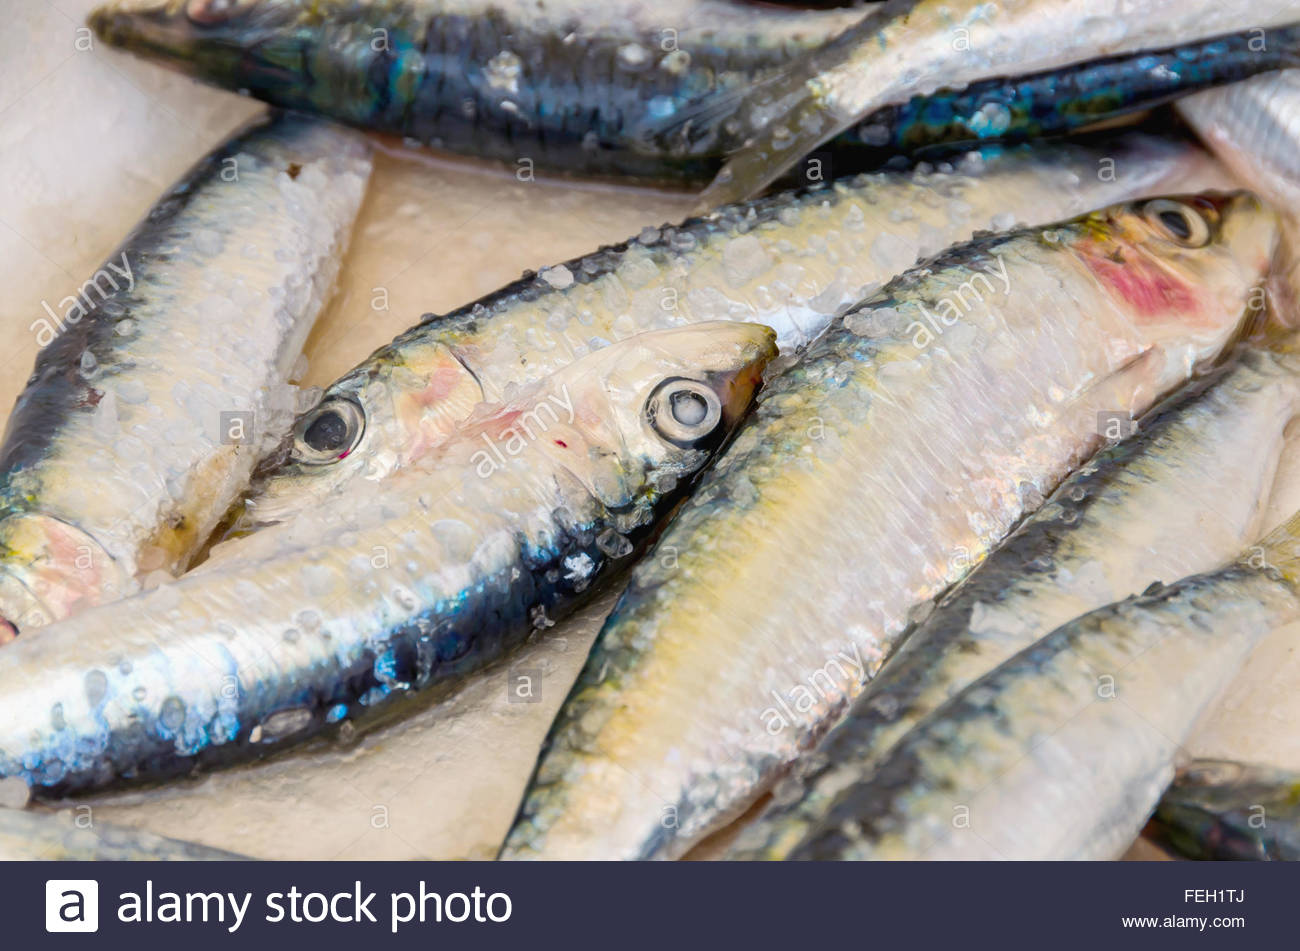 Fresh anchovies.Pile of frozen fish. Close-up. From above - Stock Image